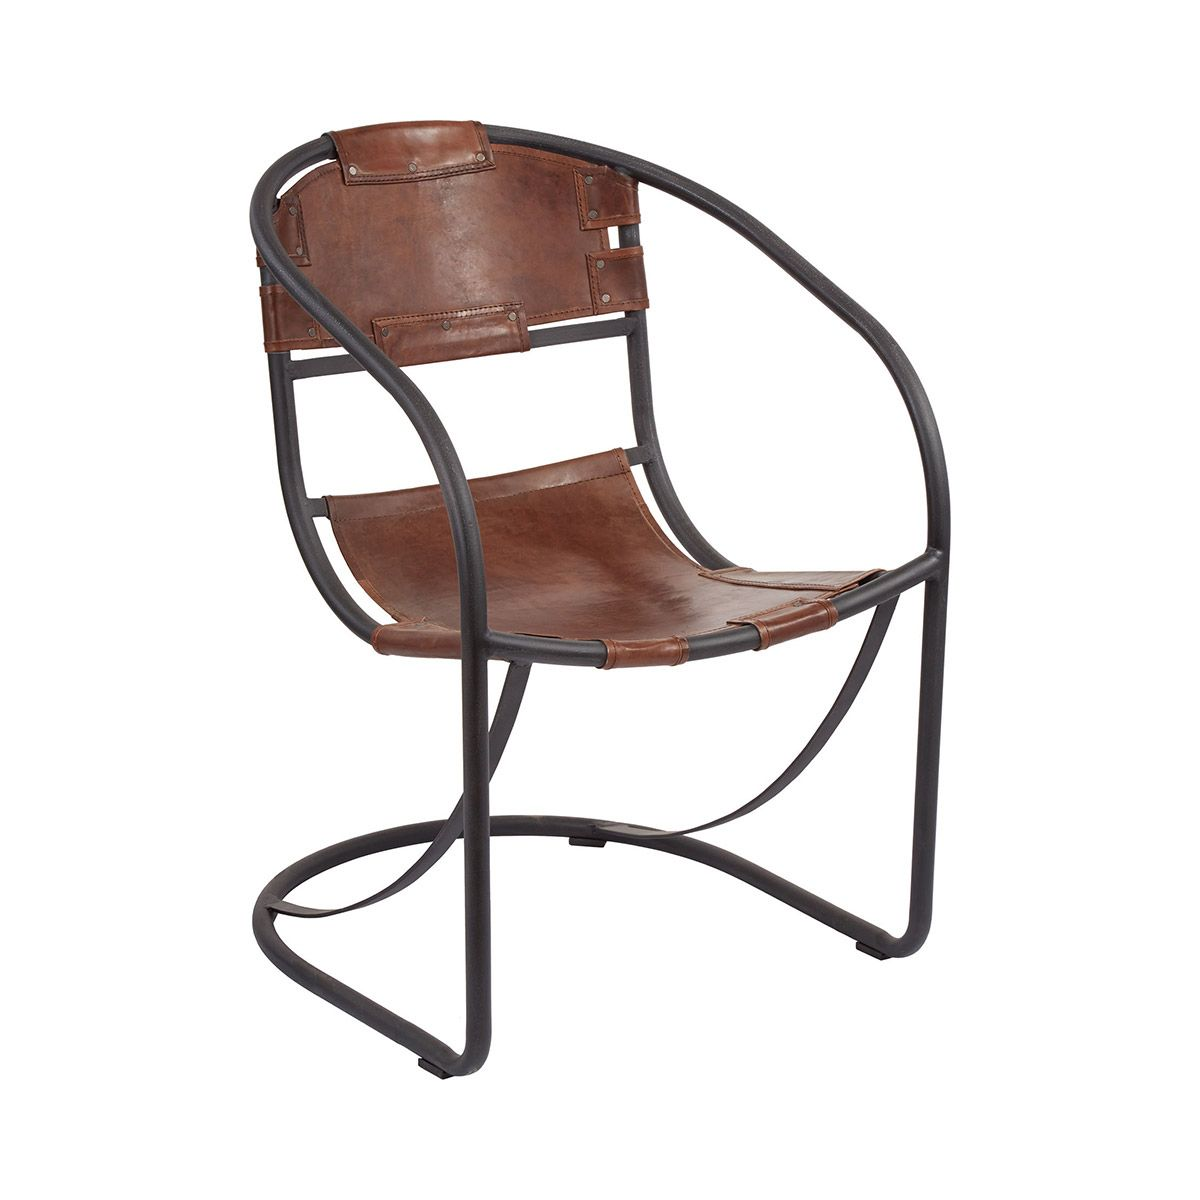 a modern industrial take on the iconic leather lounge chair the  - a modern industrial take on the iconic leather lounge chair theinnovative tyson leather accent chair will make a handsome addition to yourcontemporary